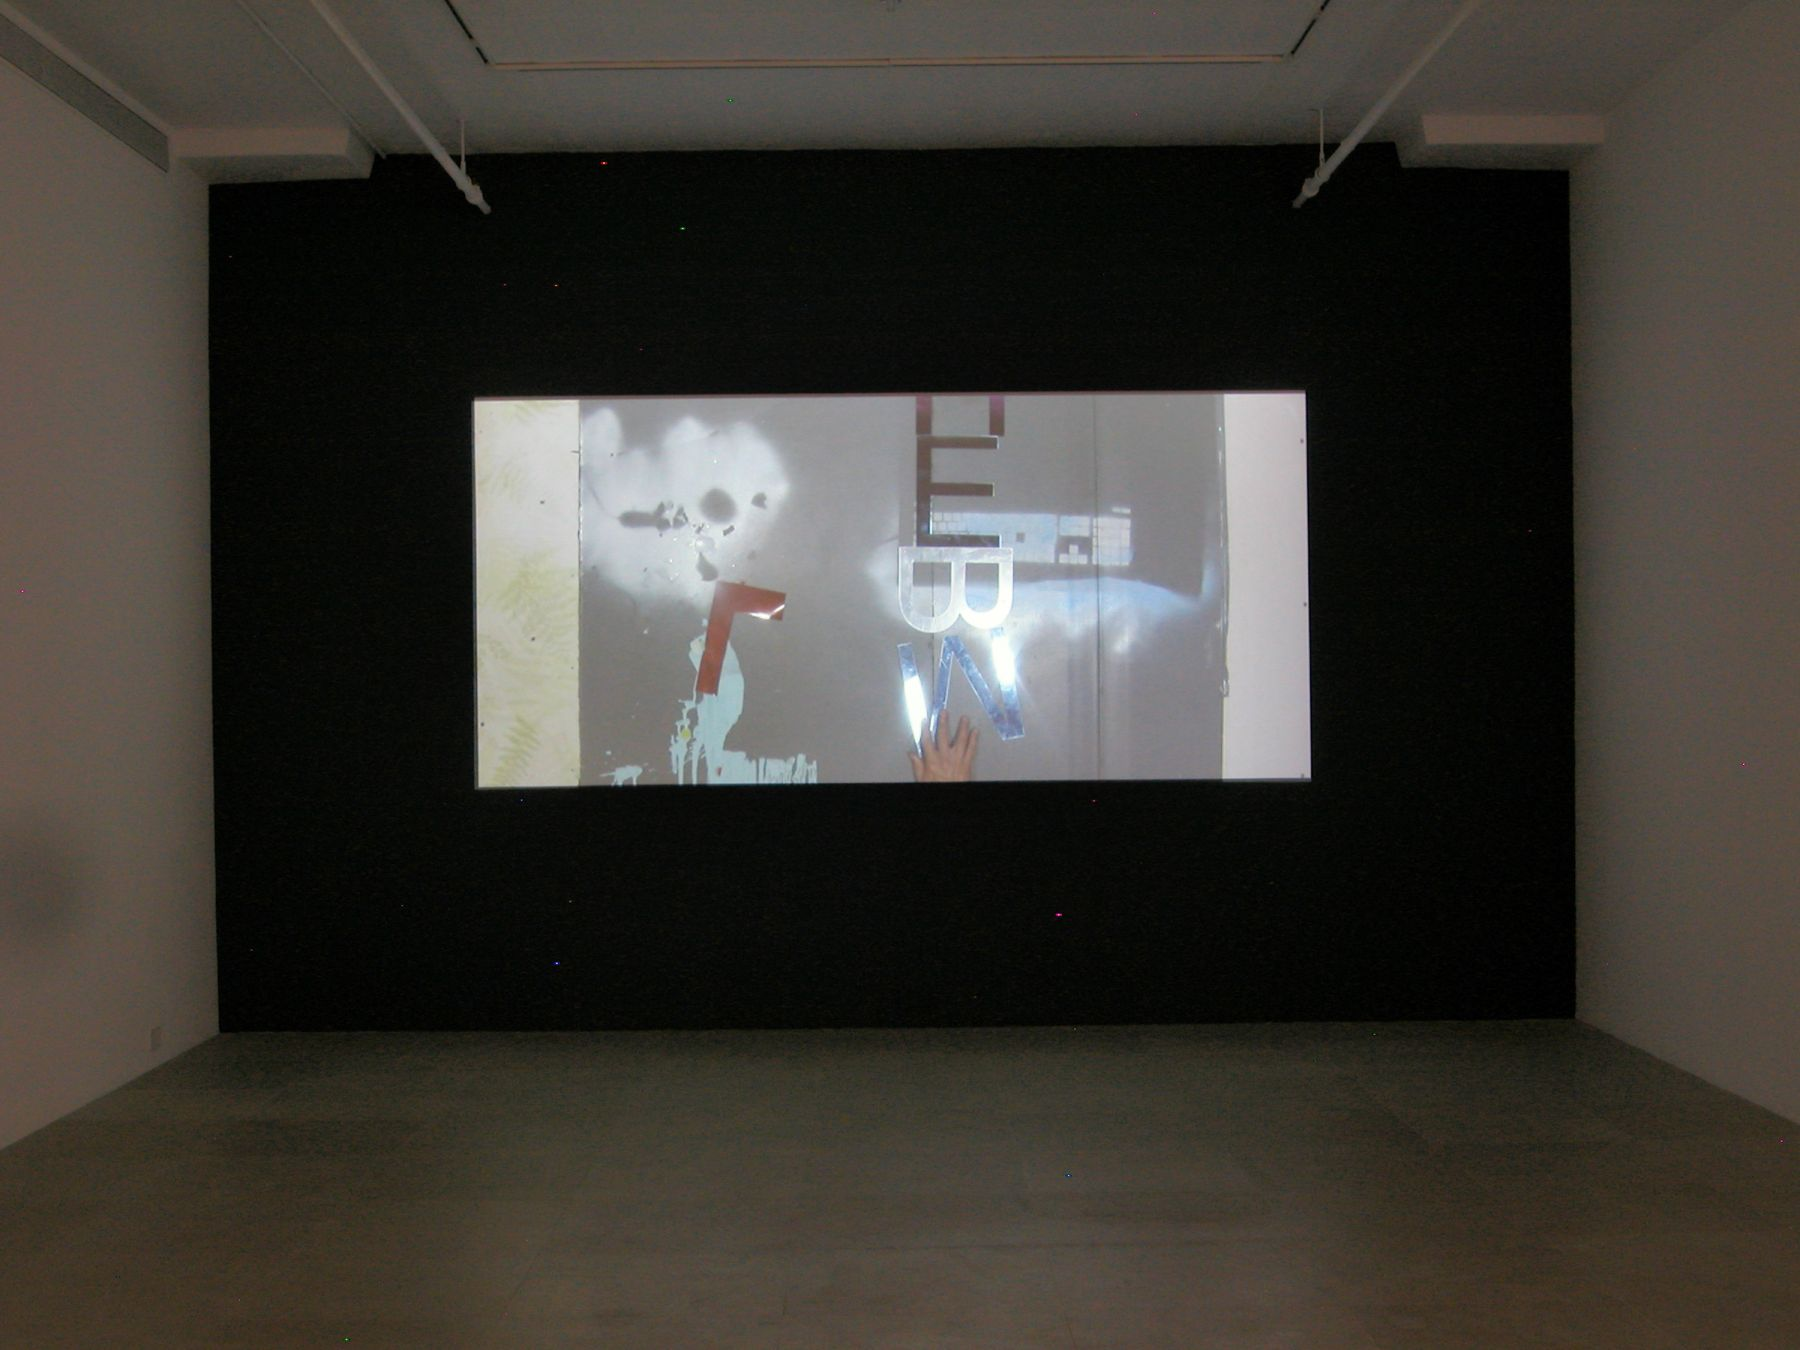 Alex Hubbard, Lost Loose Ends, 2008, Video, 4:08 minutes